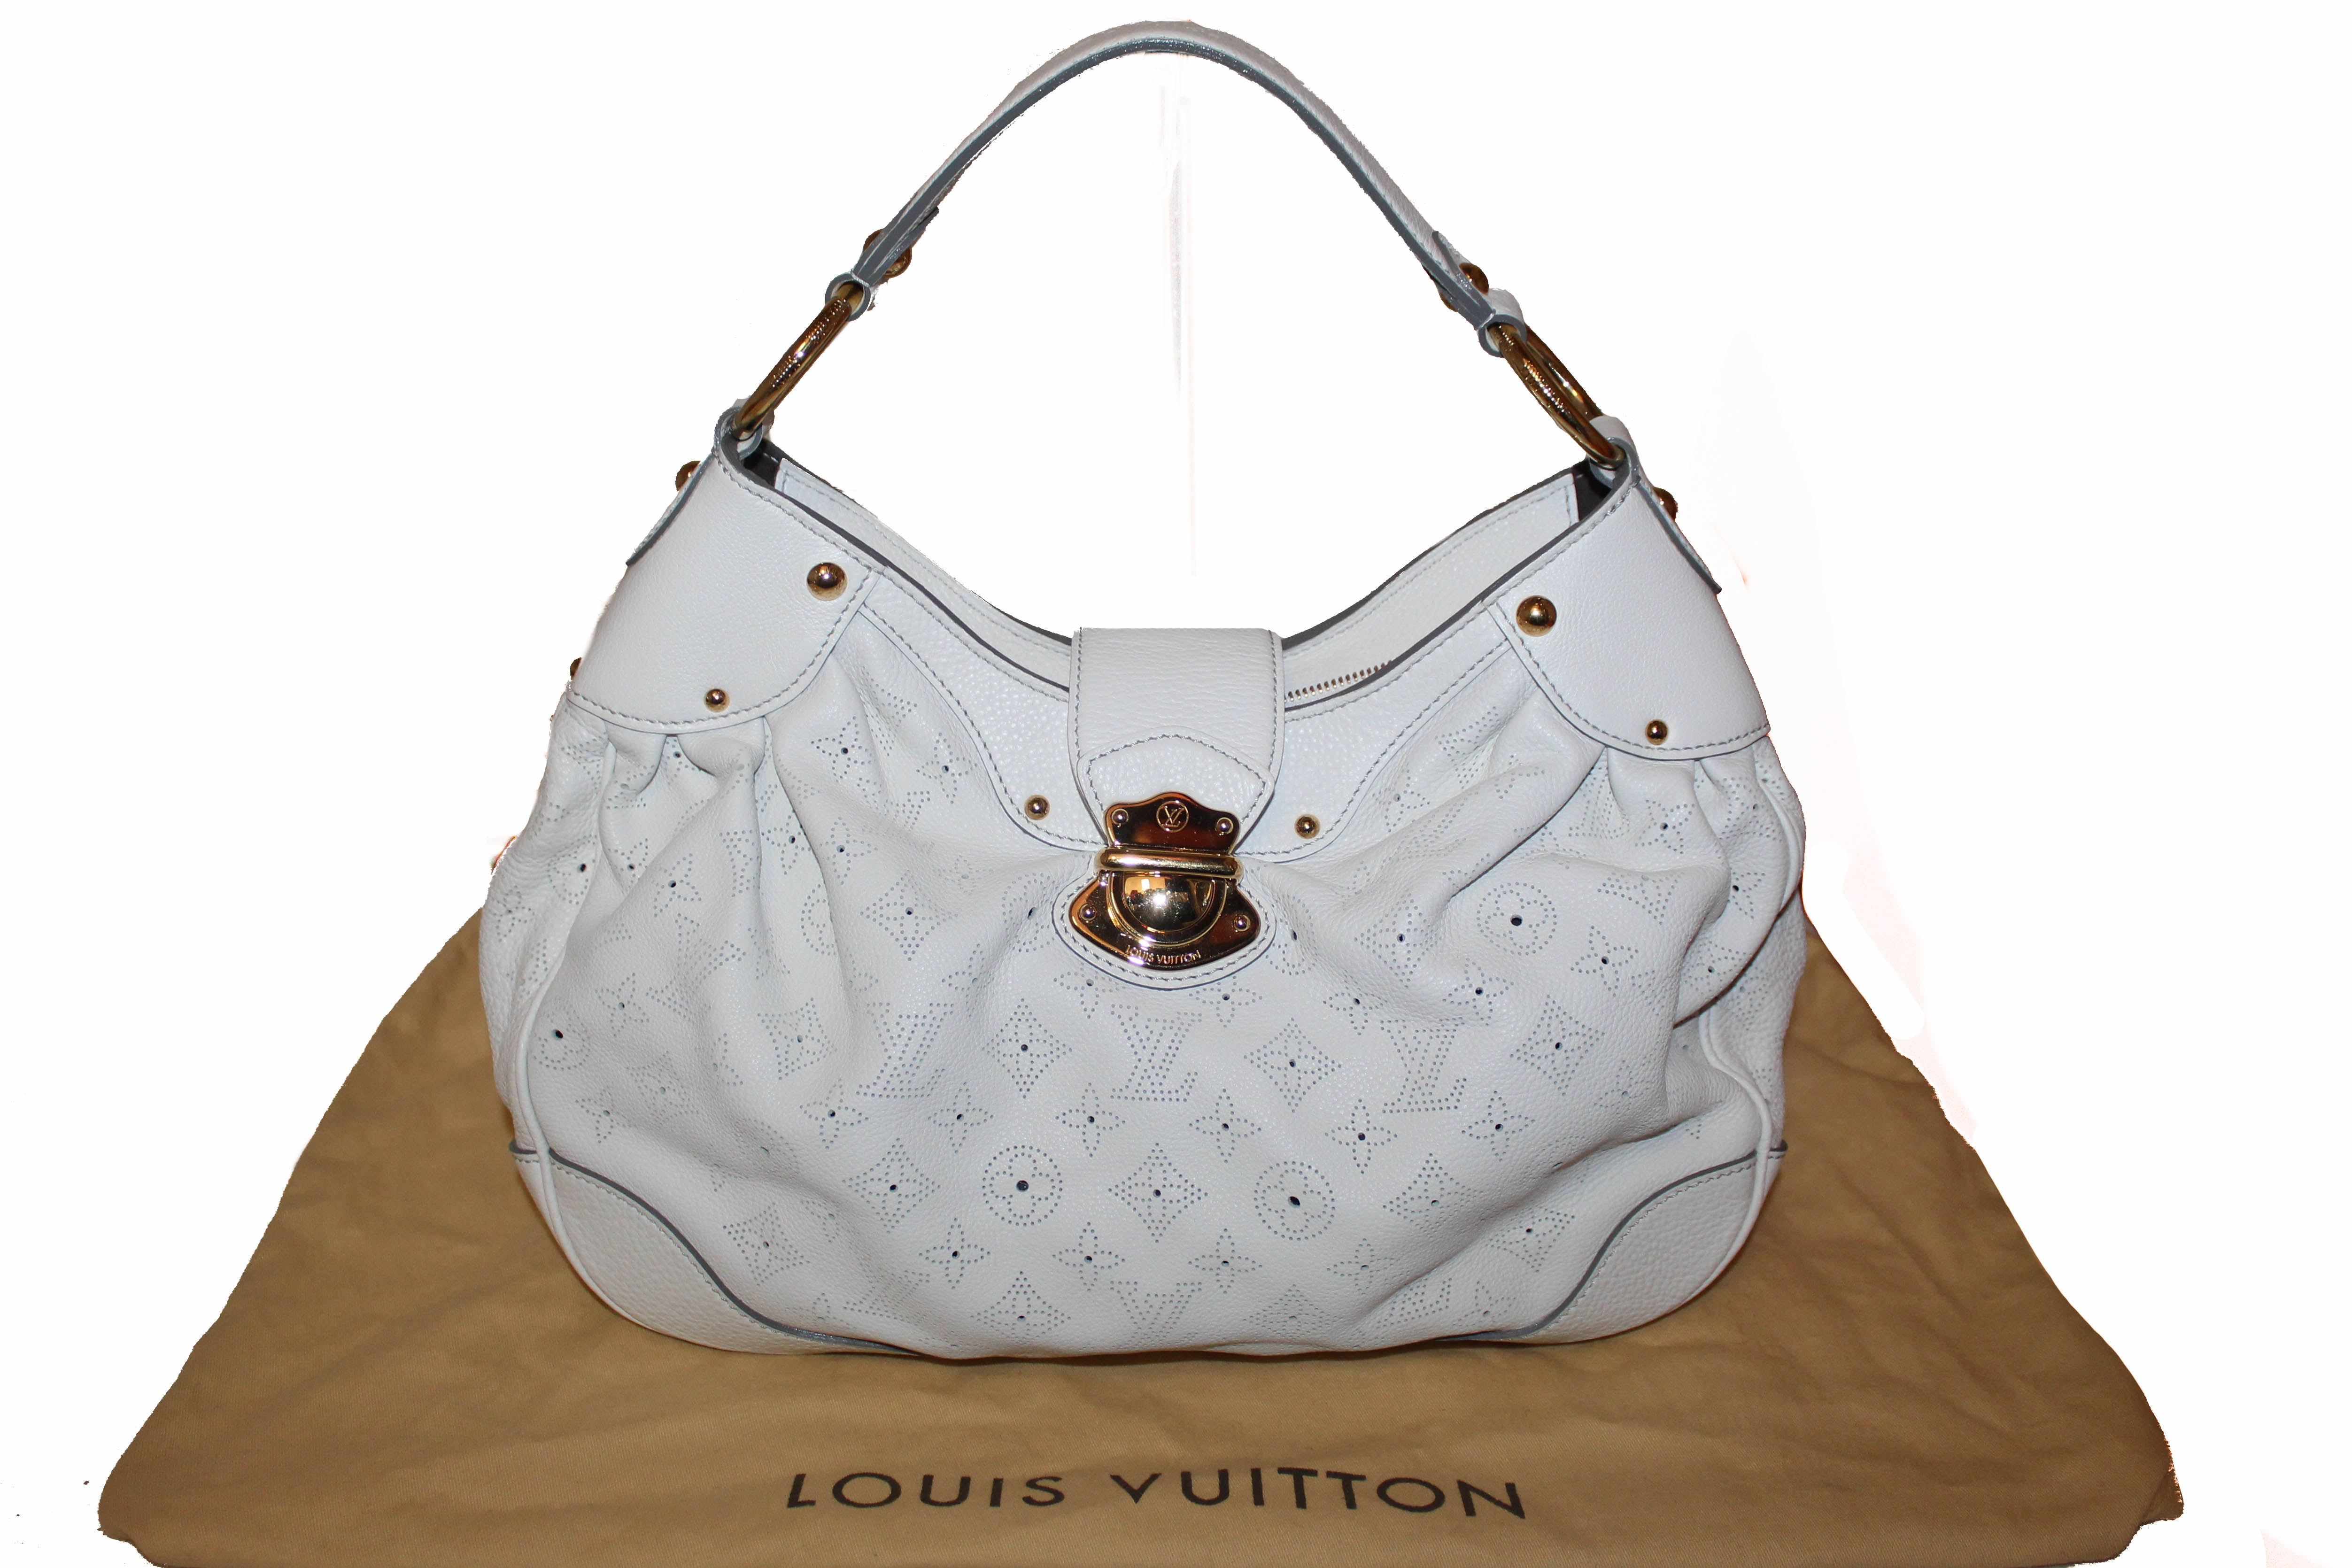 Authentic Louis Vuitton White Perforated Monogram Mahina Leather Solar PM Shoulder Bag